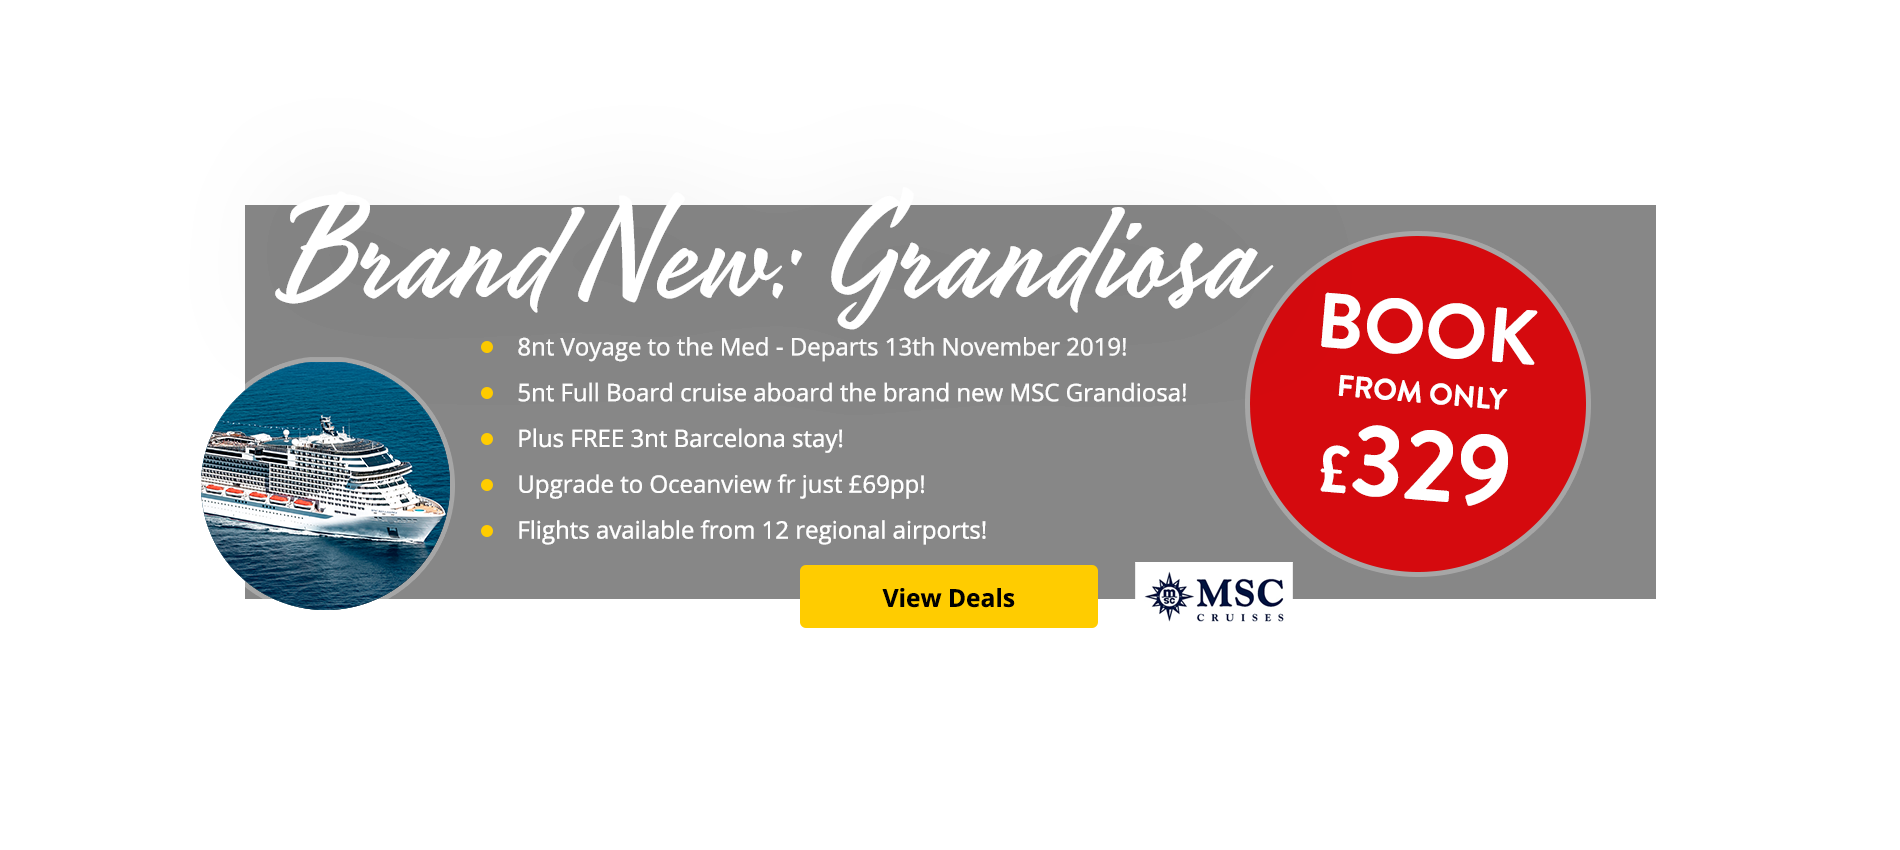 8nt Voyage to the Med - Departs 13th November 2019! 5nt Full Board cruise aboard the brand new MSC Grandiosa! Plus FREE 3nt Barcelona stay! Upgrade to Oceanview fr just £69pp! Flights available from 12 regional airports!